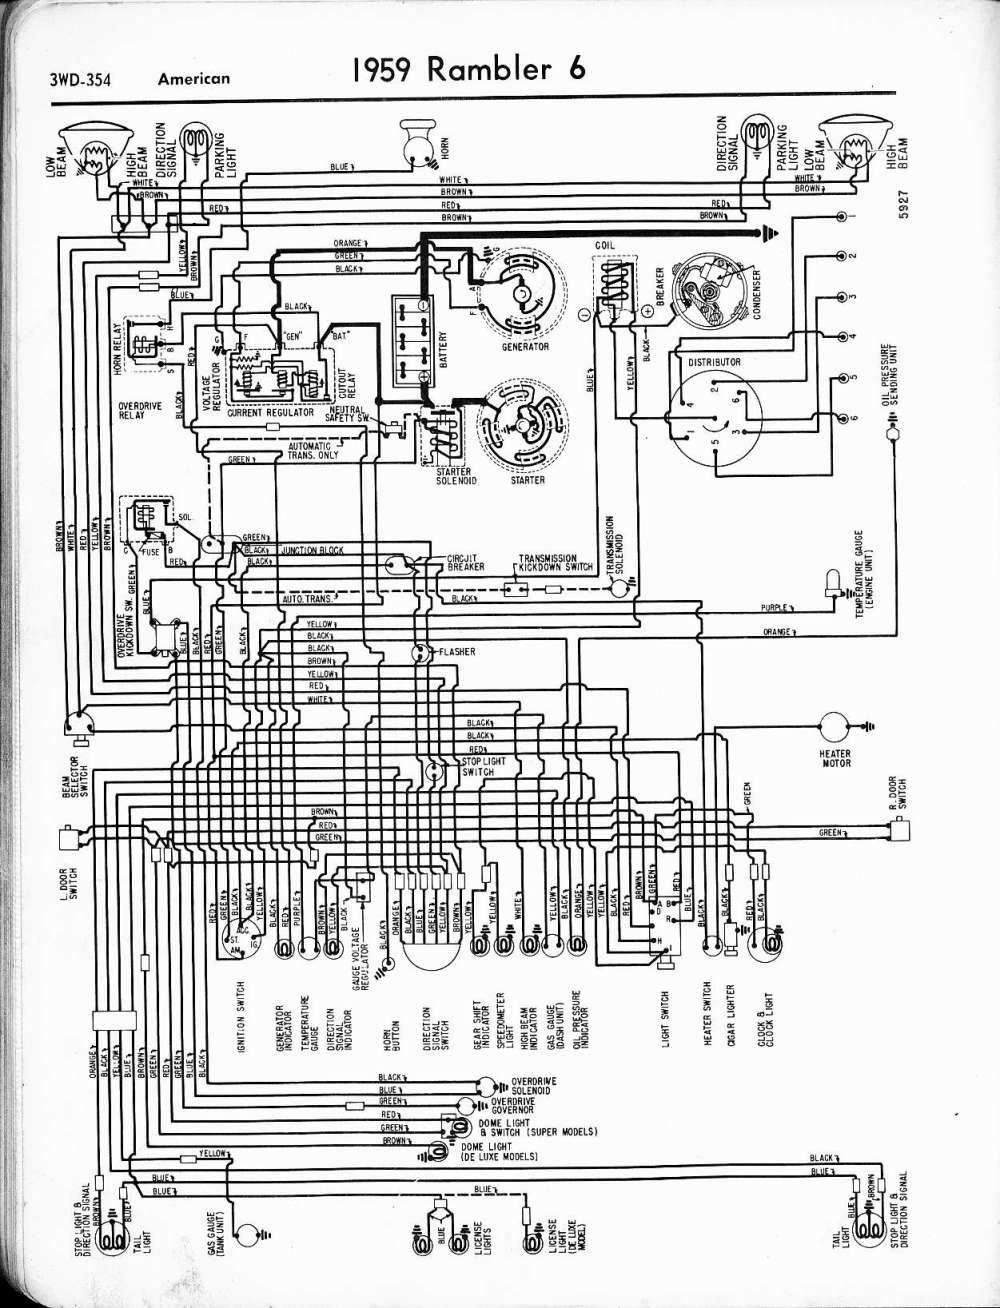 medium resolution of rambler wiring diagrams the old car manual project classic car wiring diagrams vintage car wiring diagrams